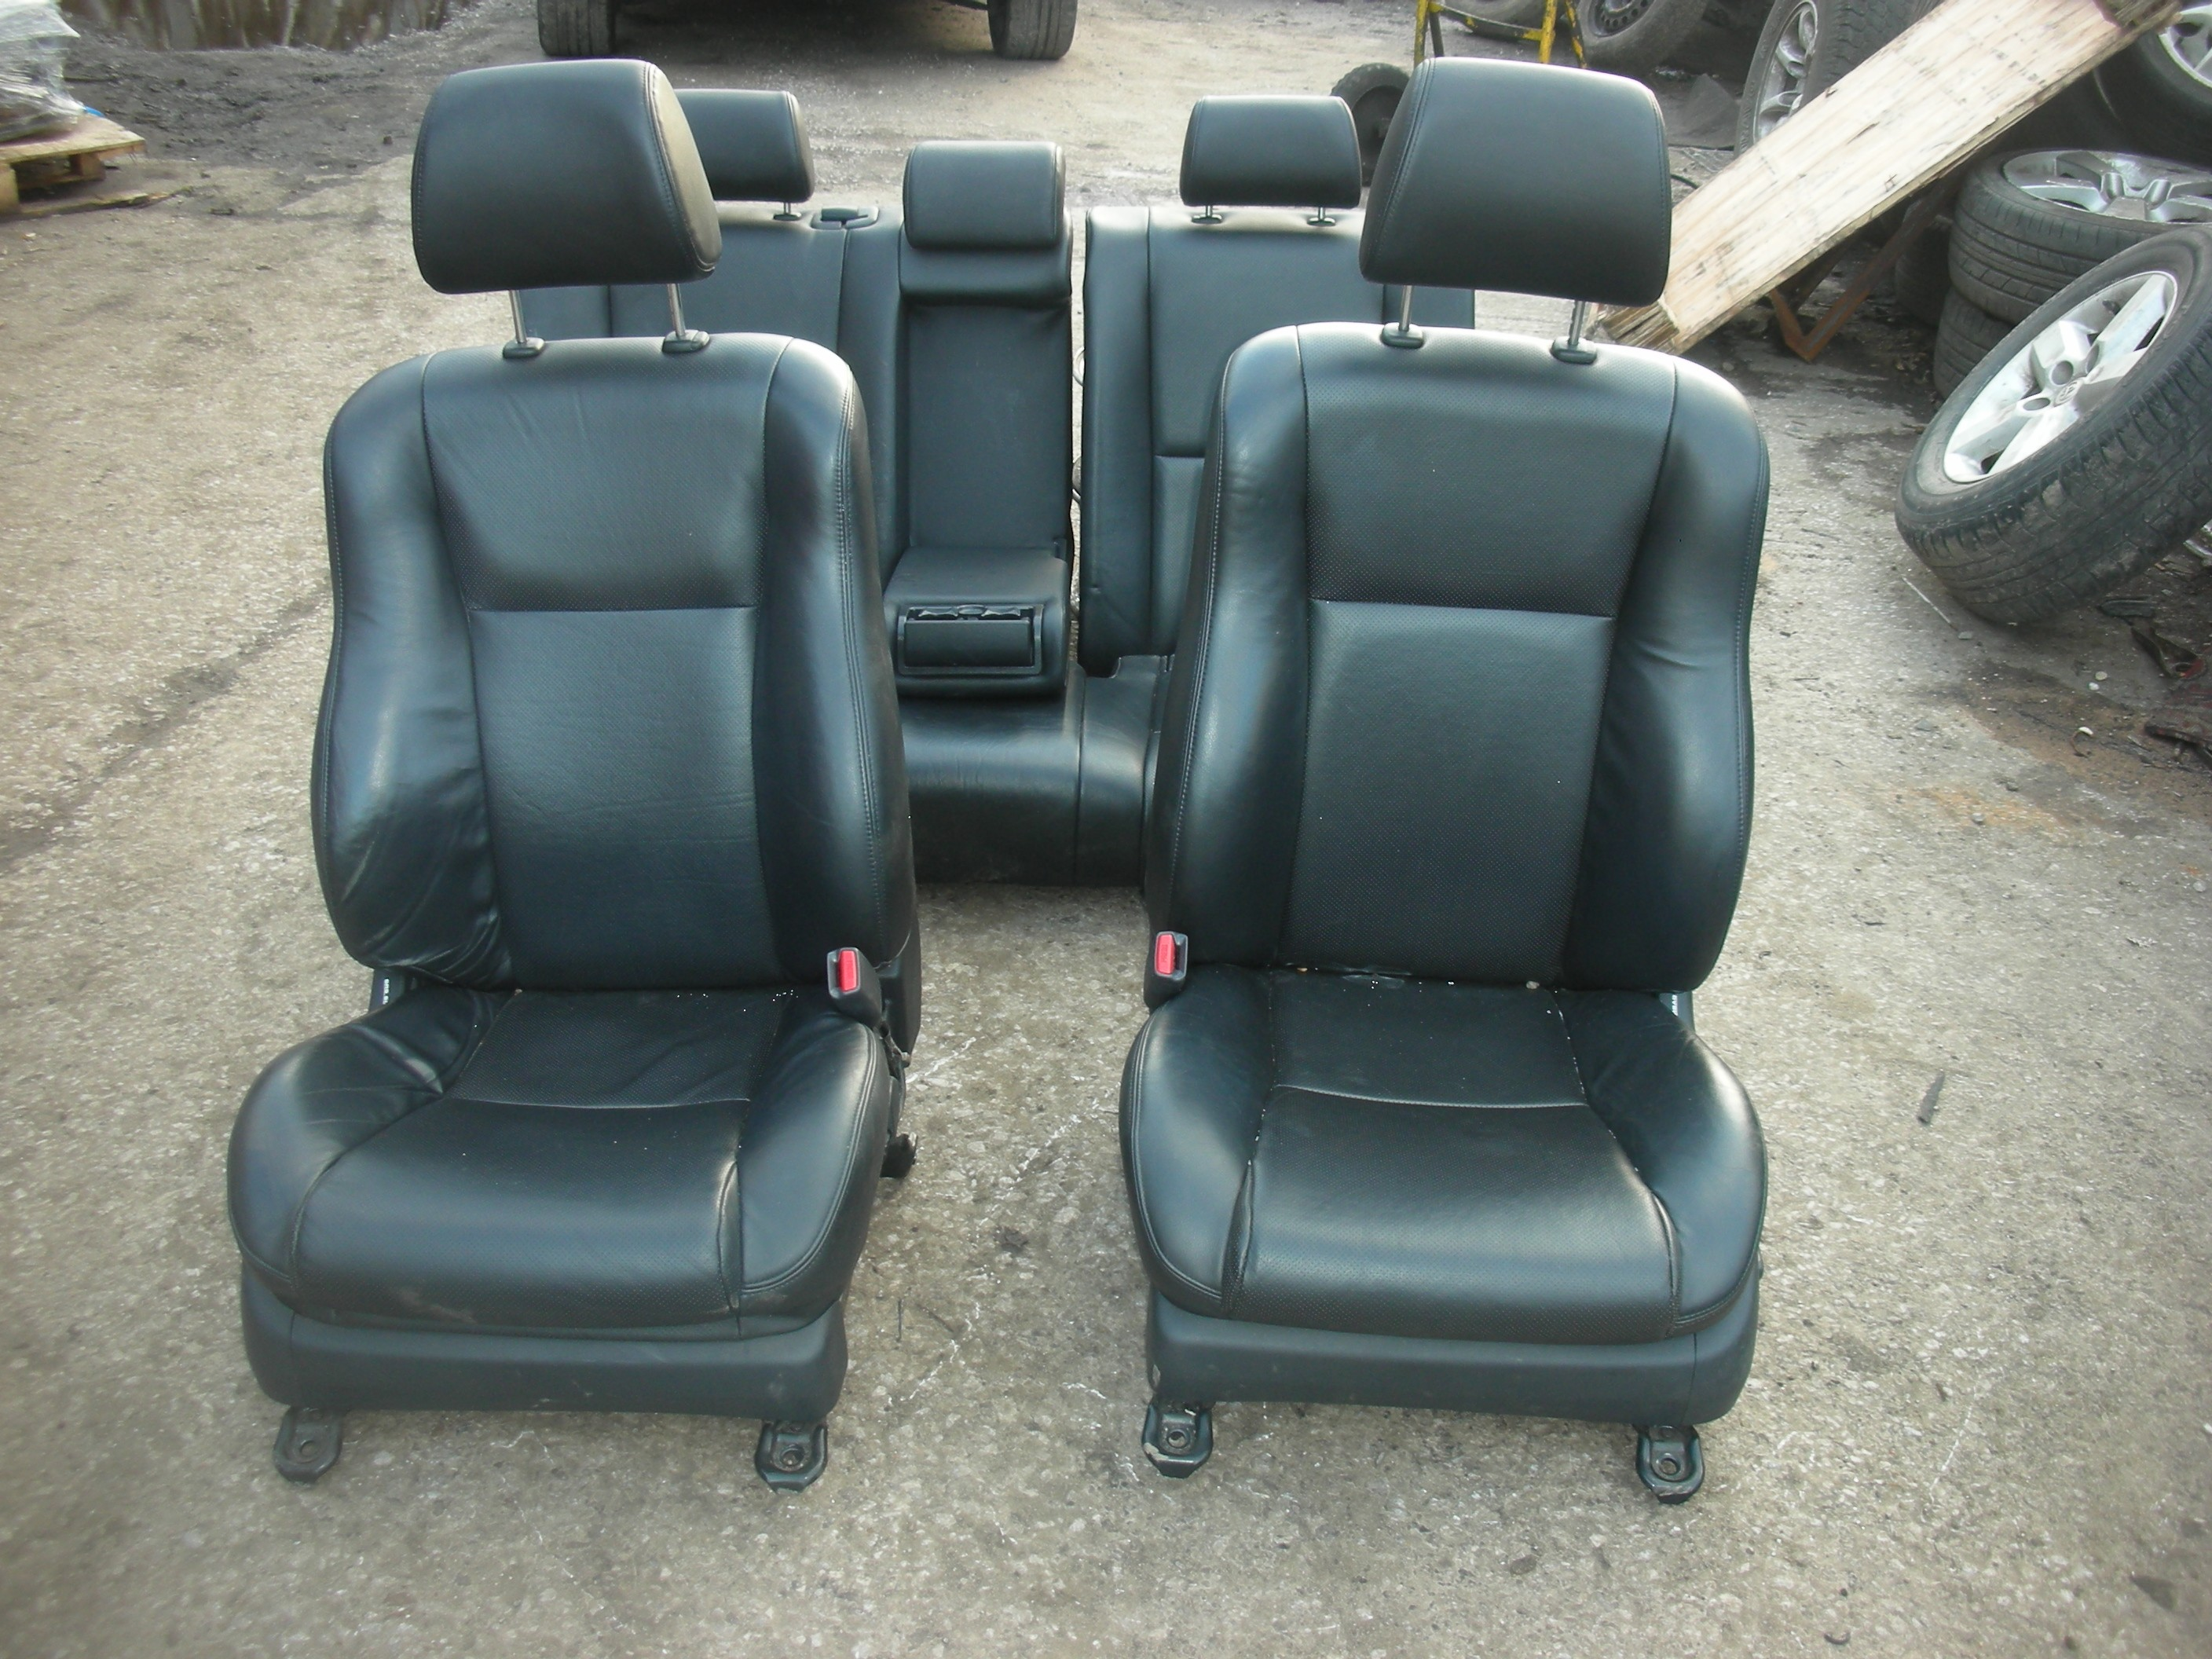 toyota avensis d4d black leather seats interior 2003 2008. Black Bedroom Furniture Sets. Home Design Ideas